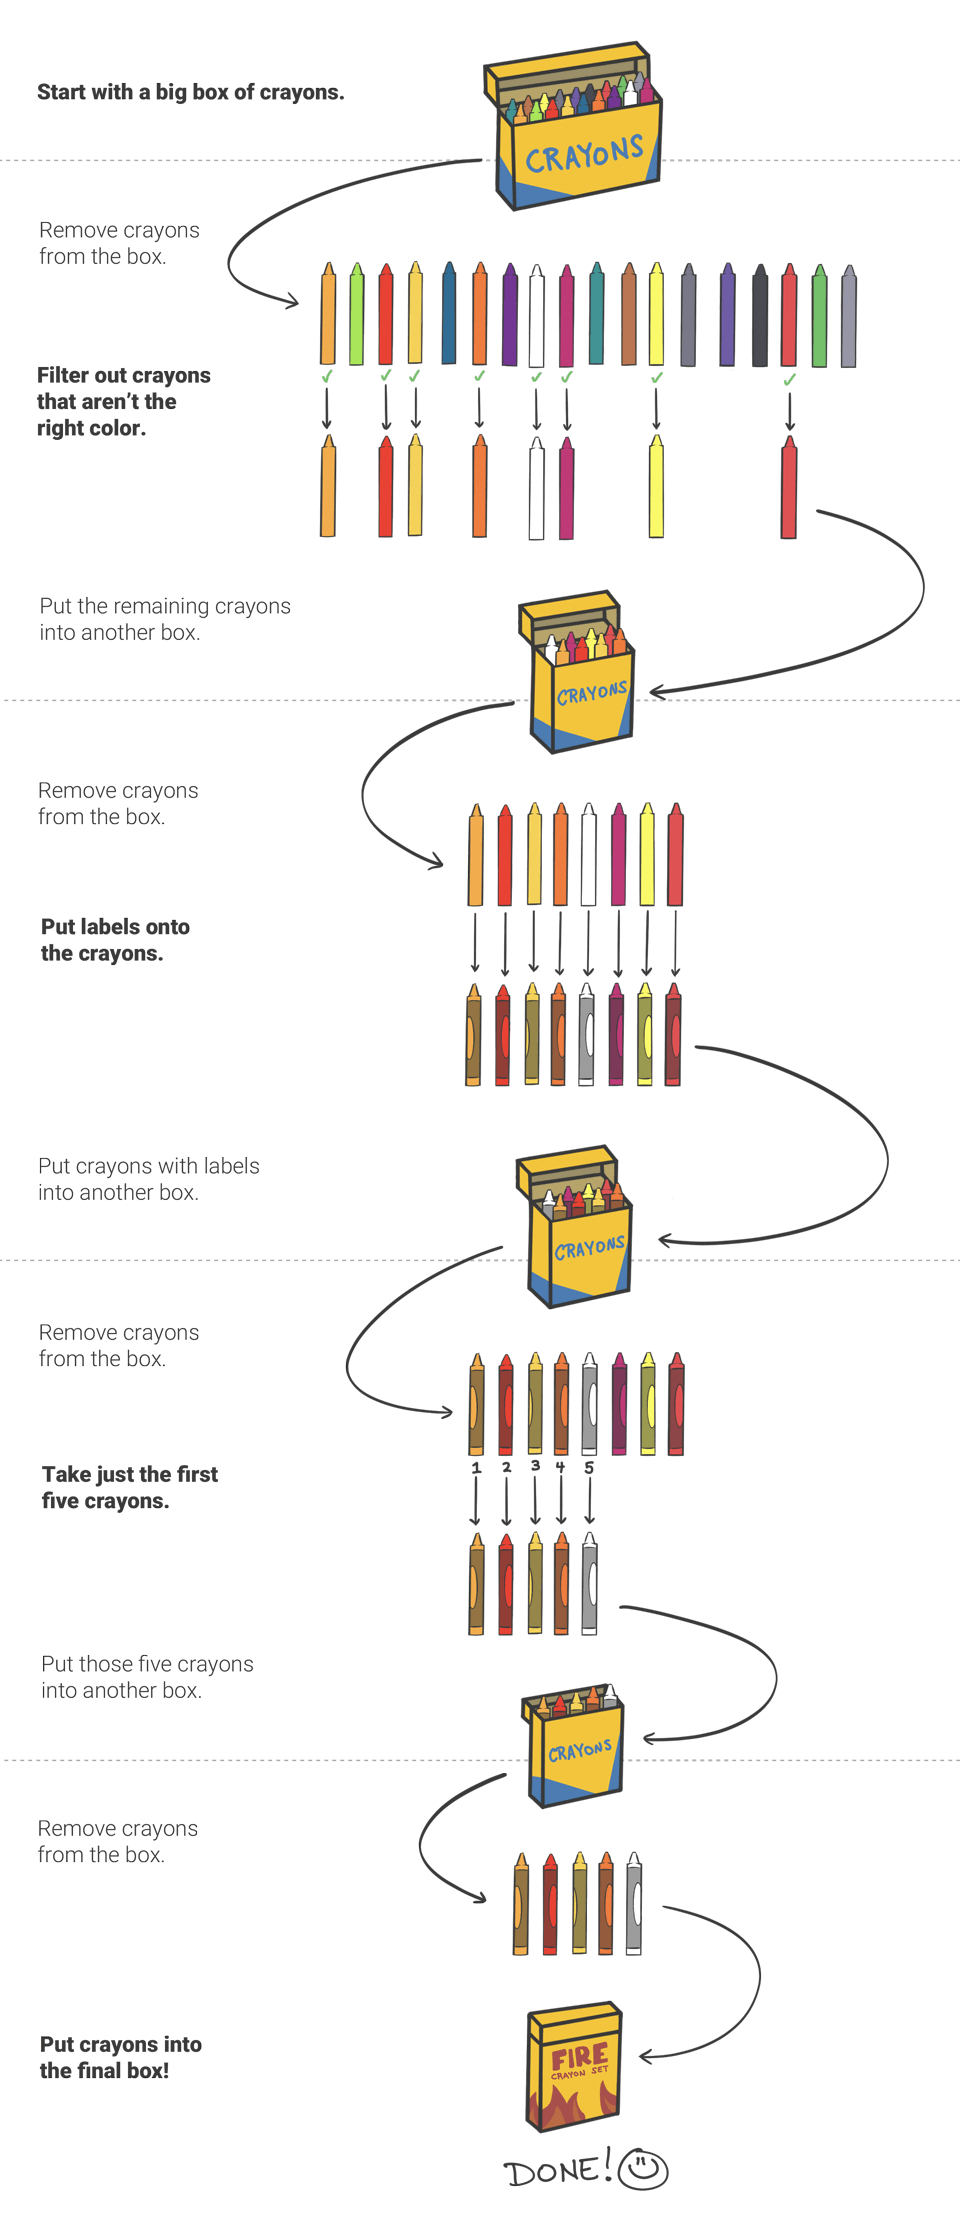 Diagram depicting an inefficient crayon process - starting with a big box of crayons, filtering by color, labeling the crayons, taking the first five crayons, and boxing them up.